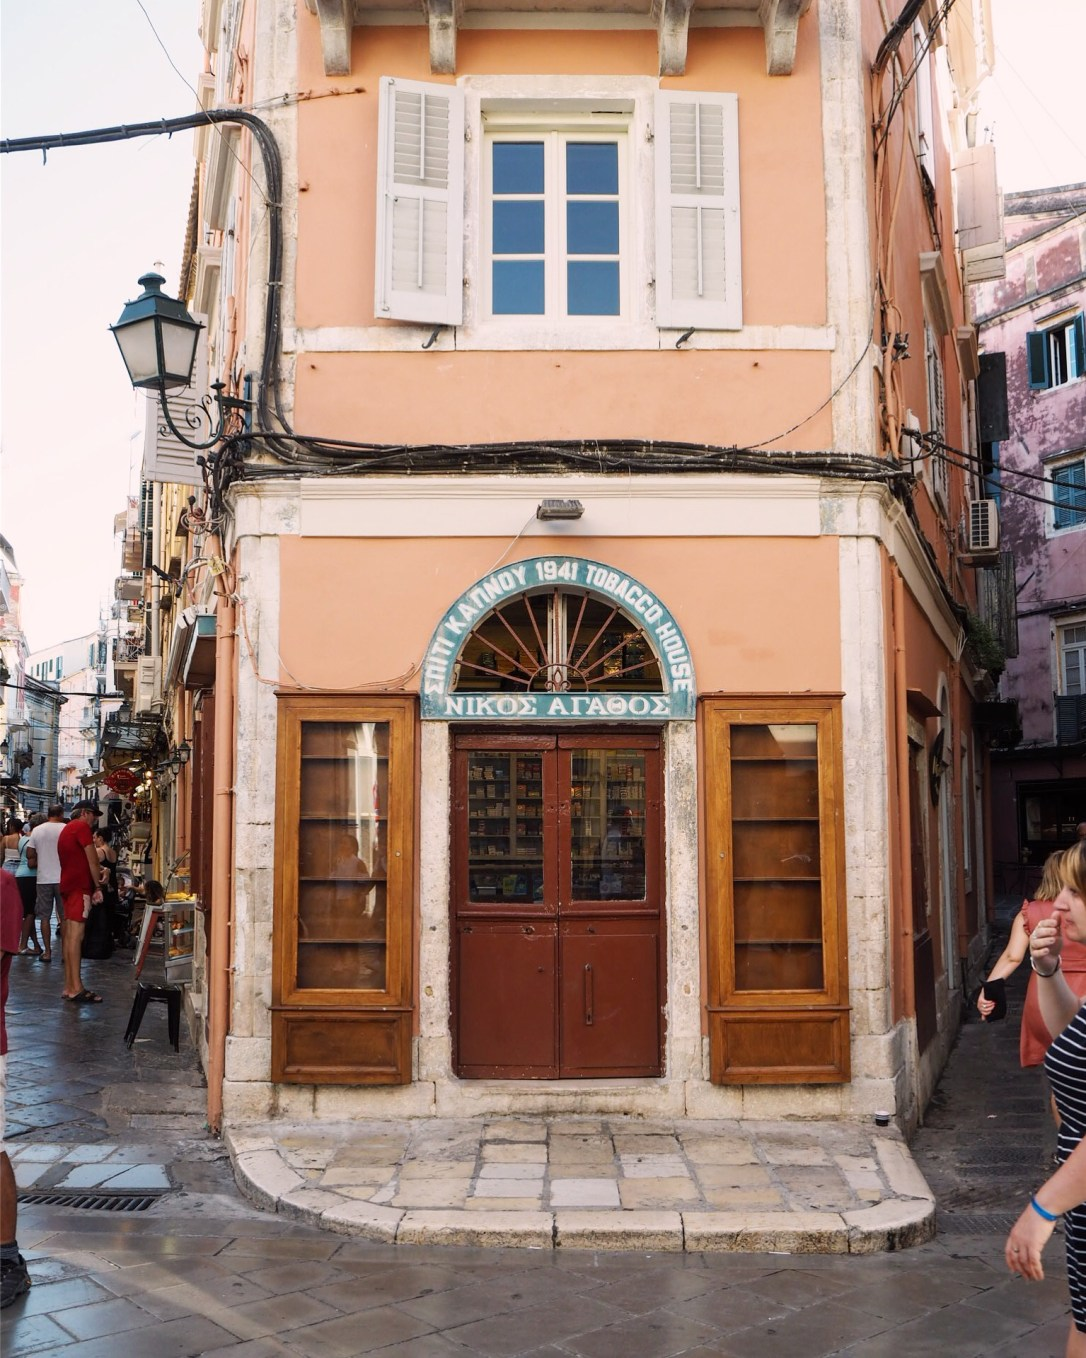 An old tobacco shop from the 1940s in Kerkyra town